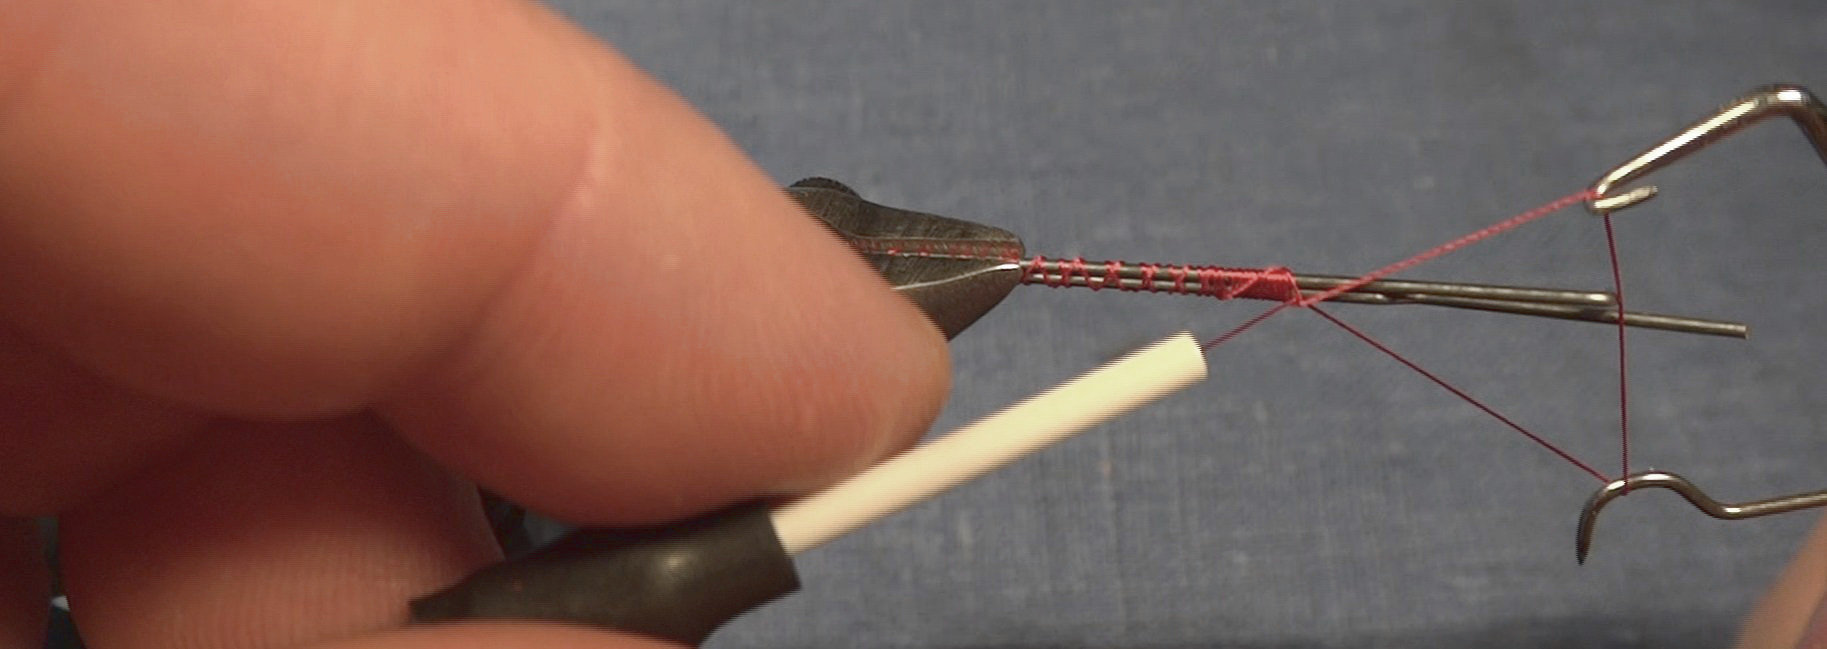 Make Control Rods with Fly-tying techniques | Flite Test